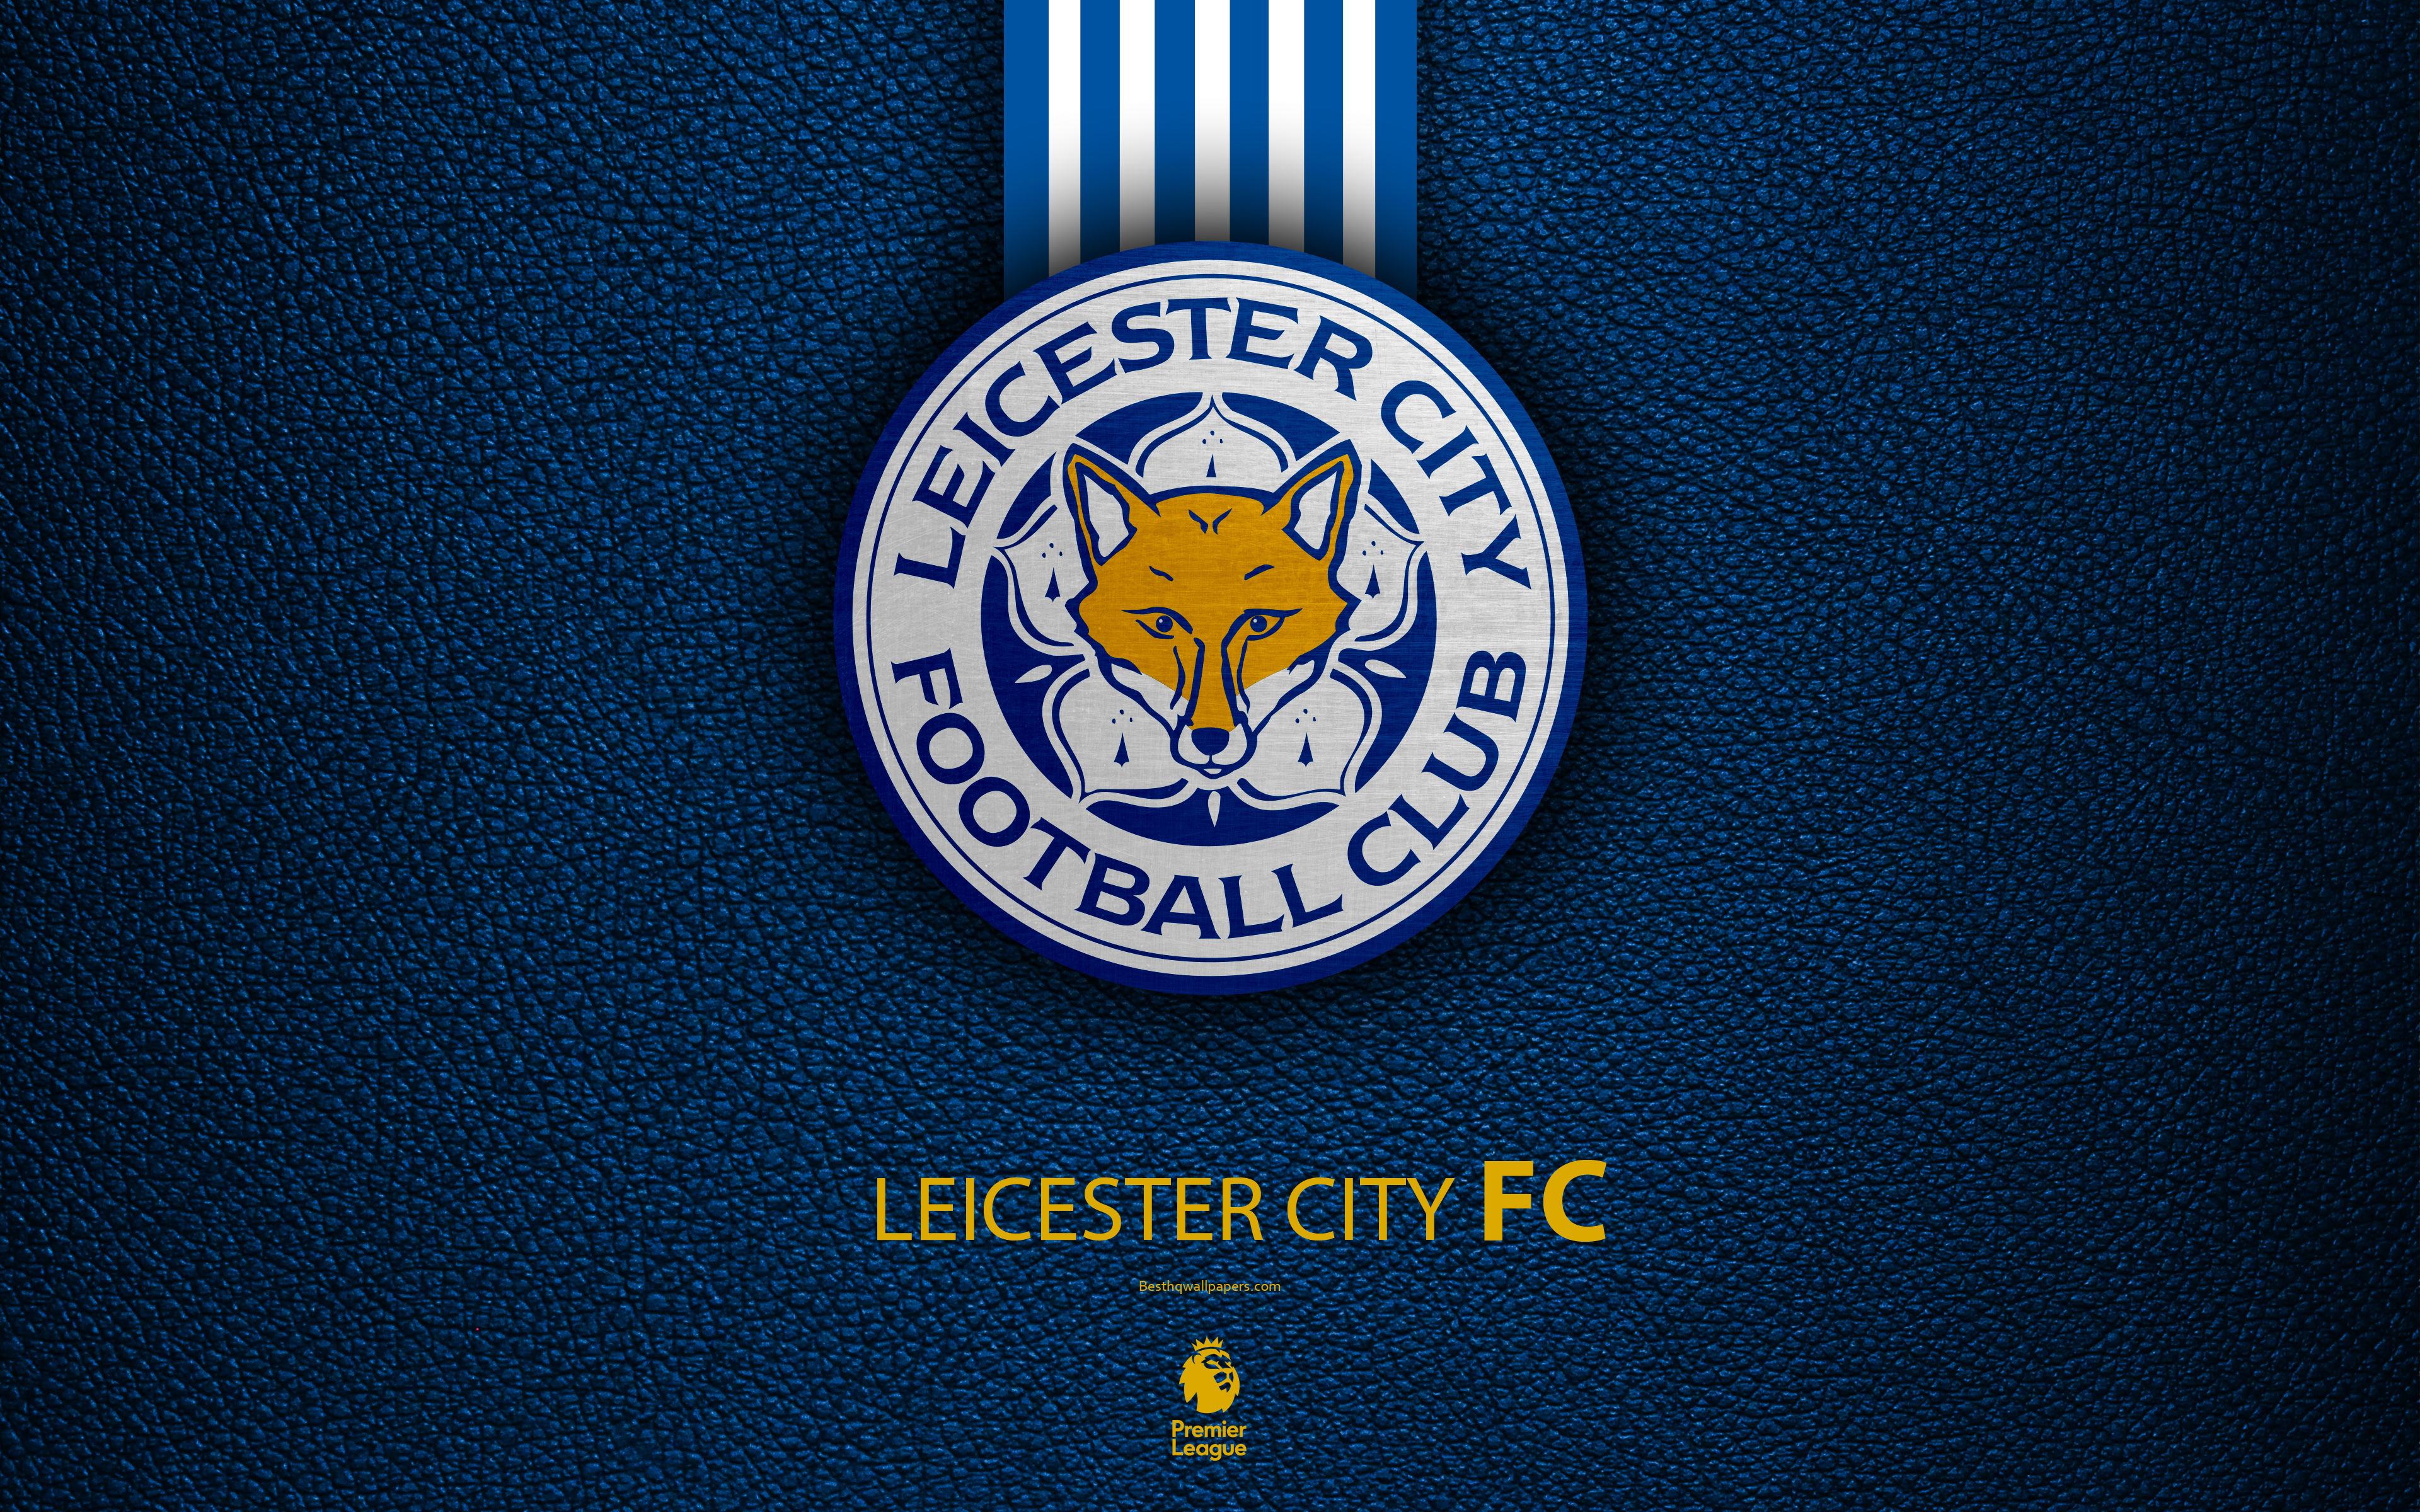 Download wallpapers Leicester City FC 4k English football club 3840x2400